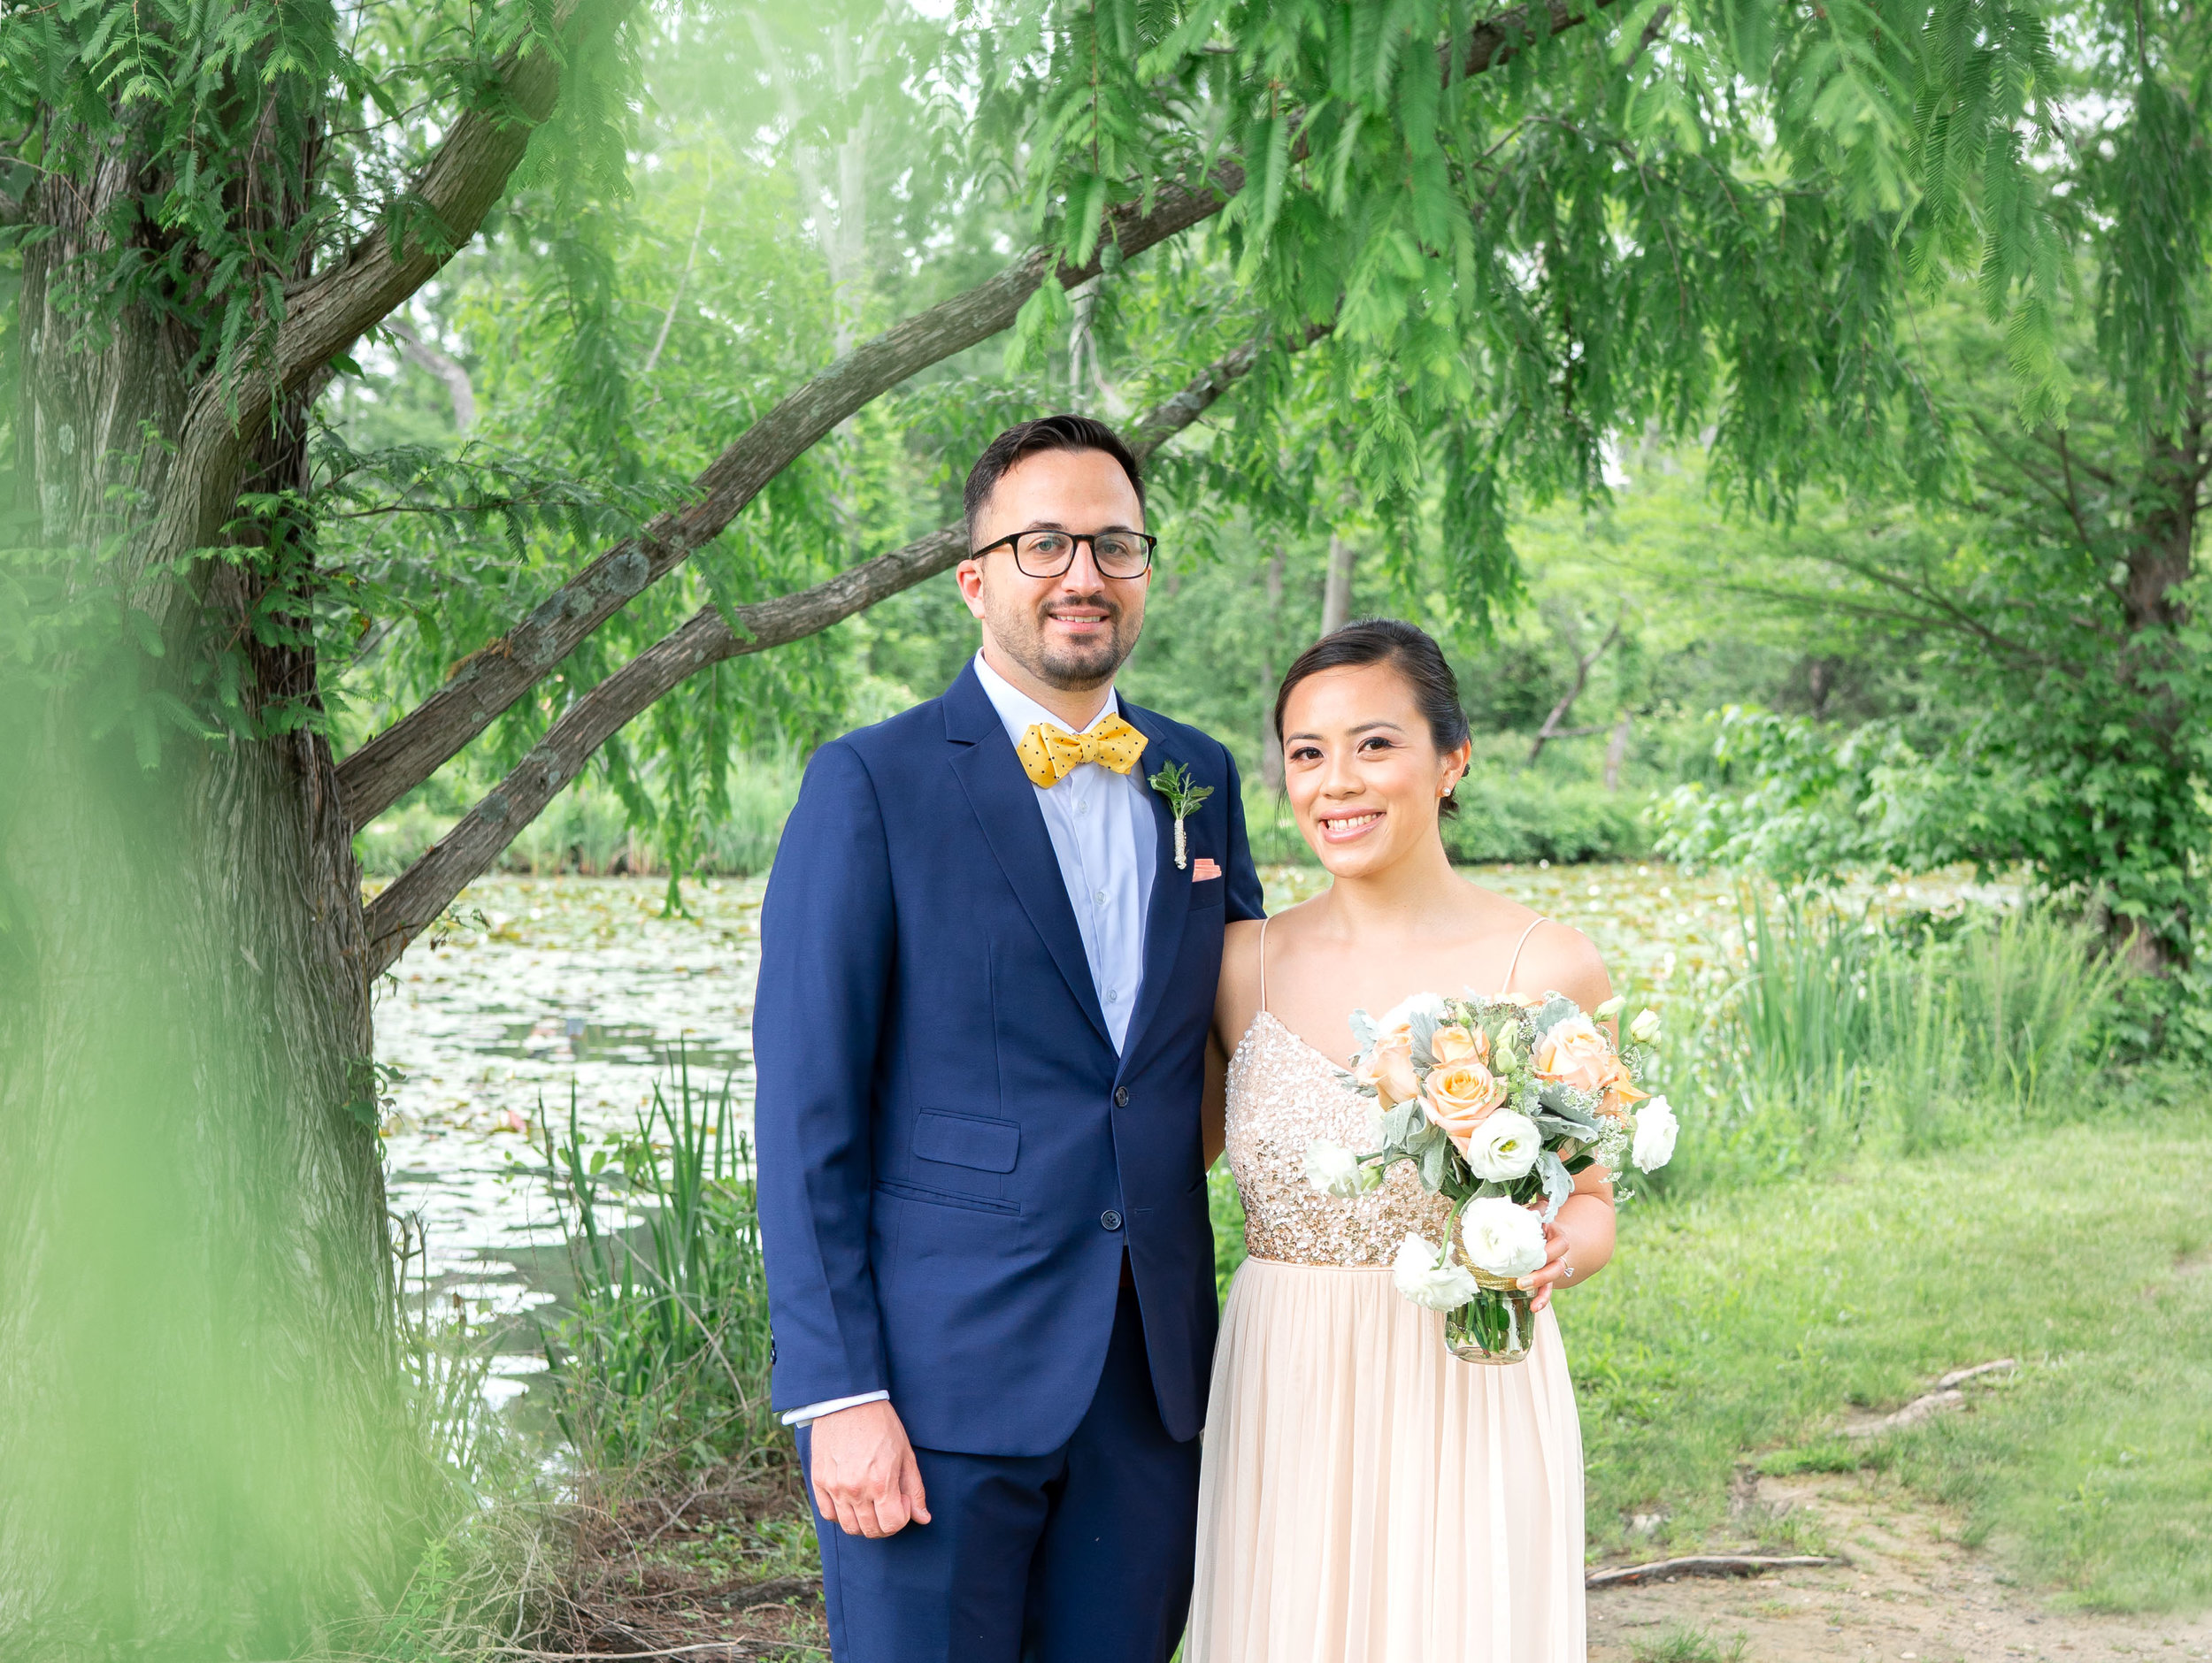 Kenilworth Aquatic gardens engagement and wedding portraits with bride and groom